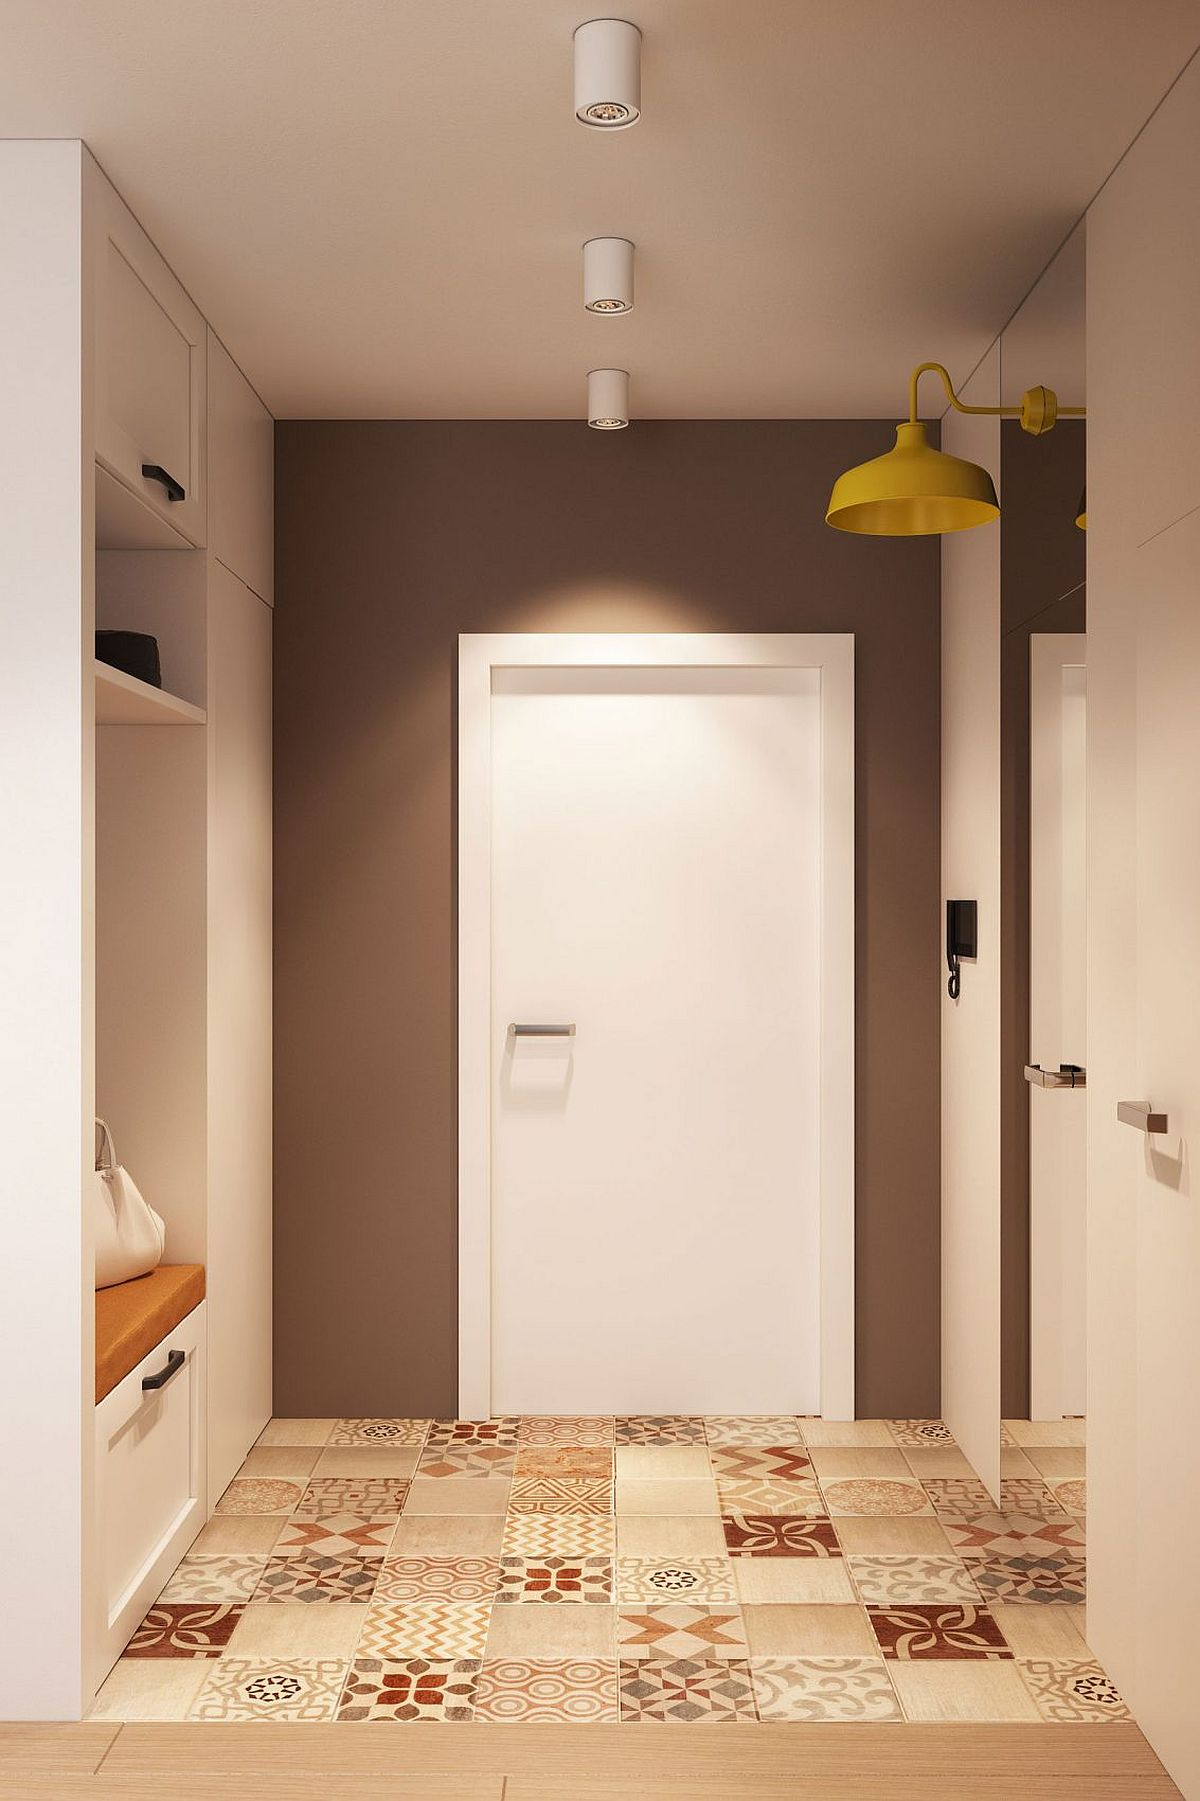 Tiles bring pattern and color to the small entry and hall